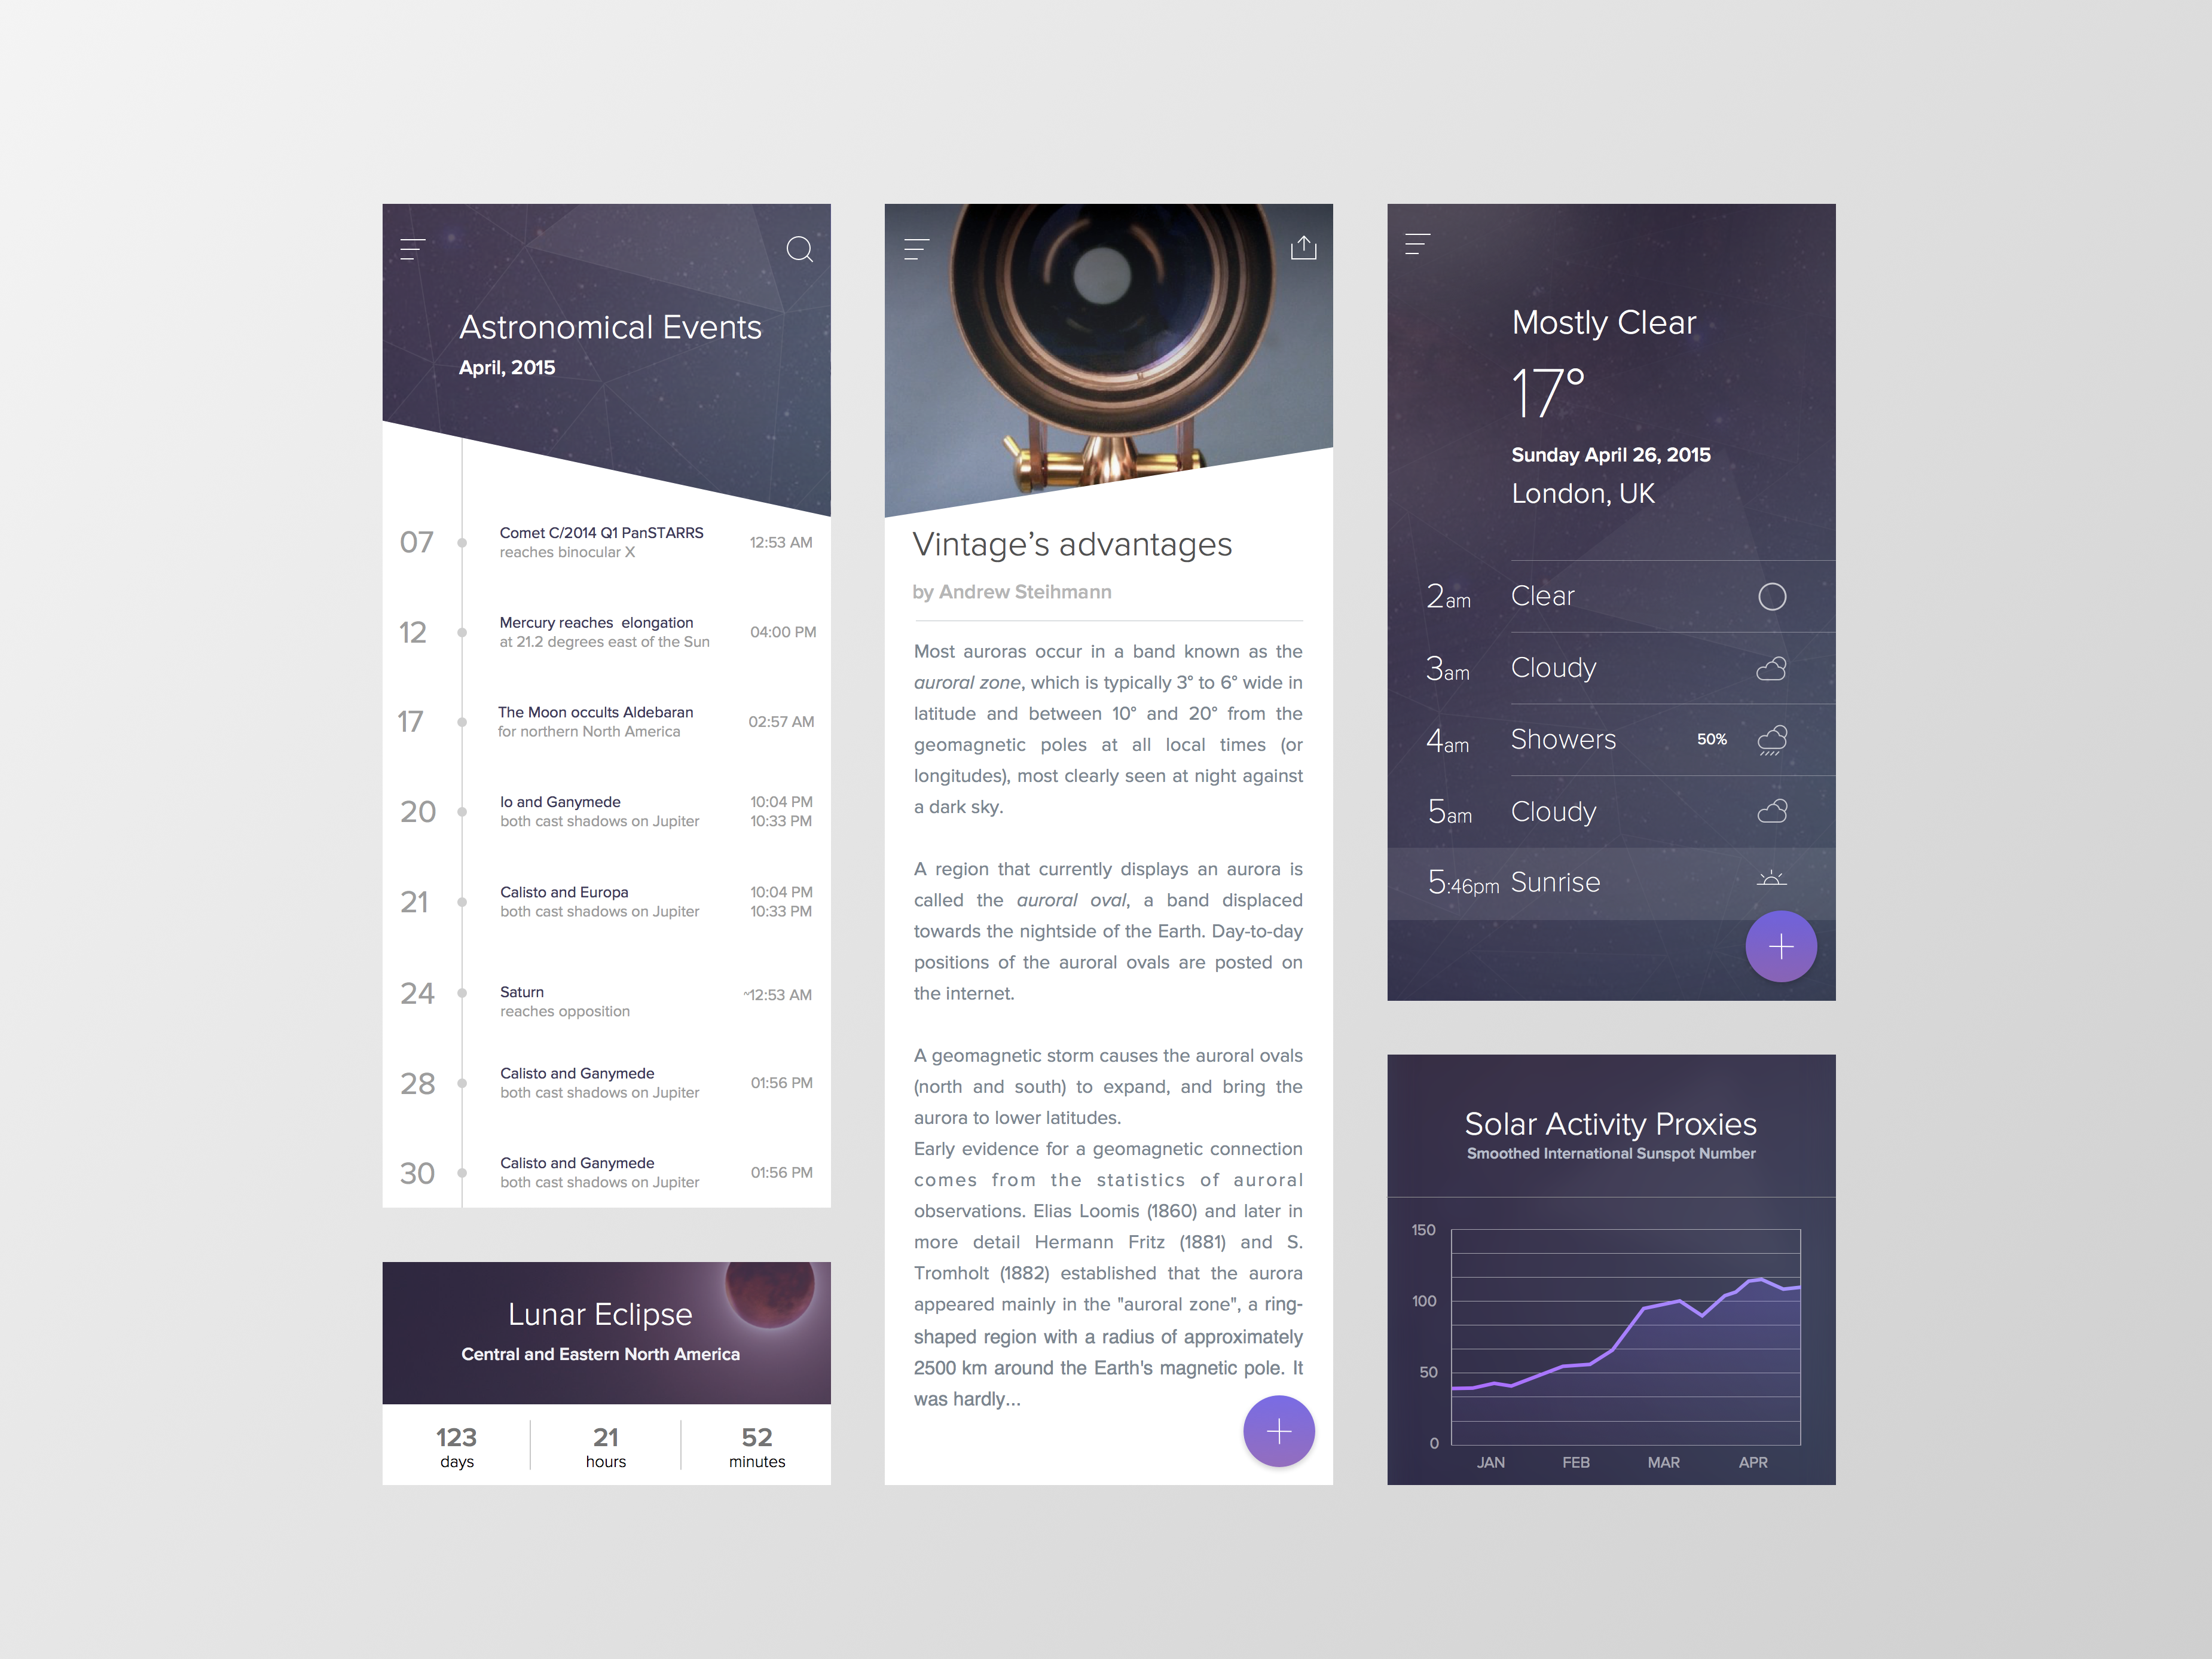 starry.png by Michael Pyrkh Free design resources, App